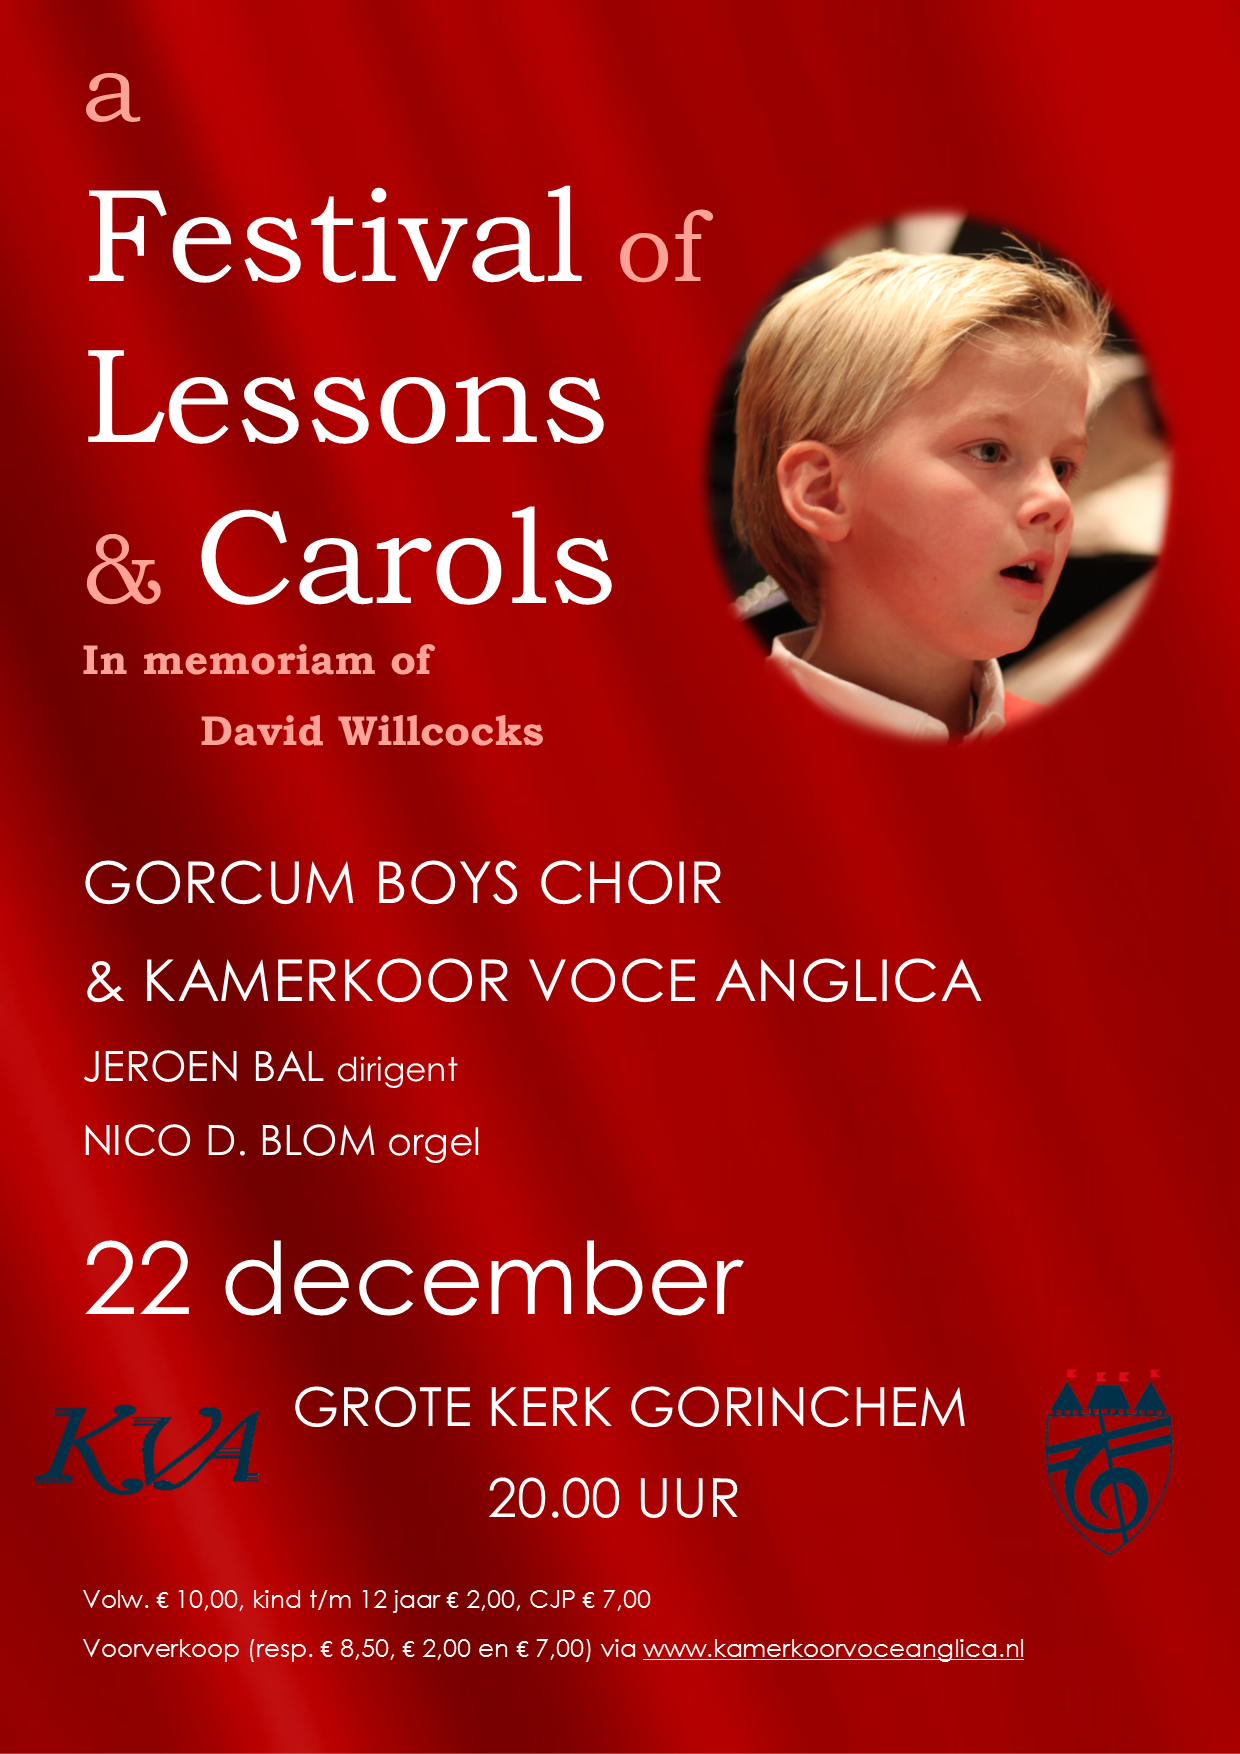 Festival of Lessons & Carols